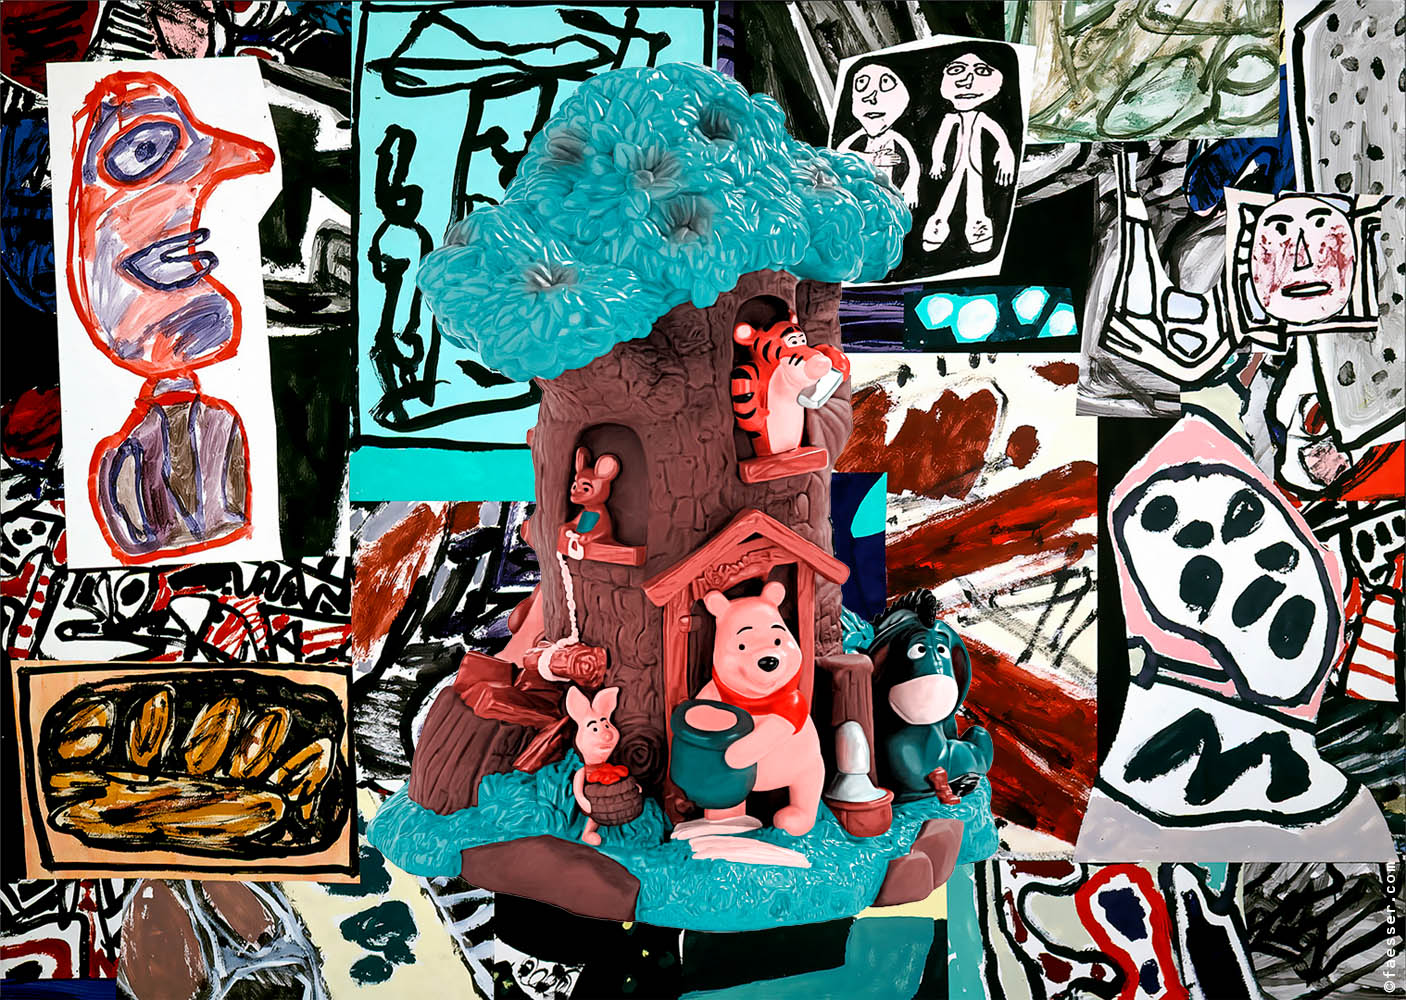 Plastic toy with Winnie the Pooh's friends and Jean Dubuffet's great painting; work of art as figurative painting; artist Roland Faesser, sculptor and painter 2018